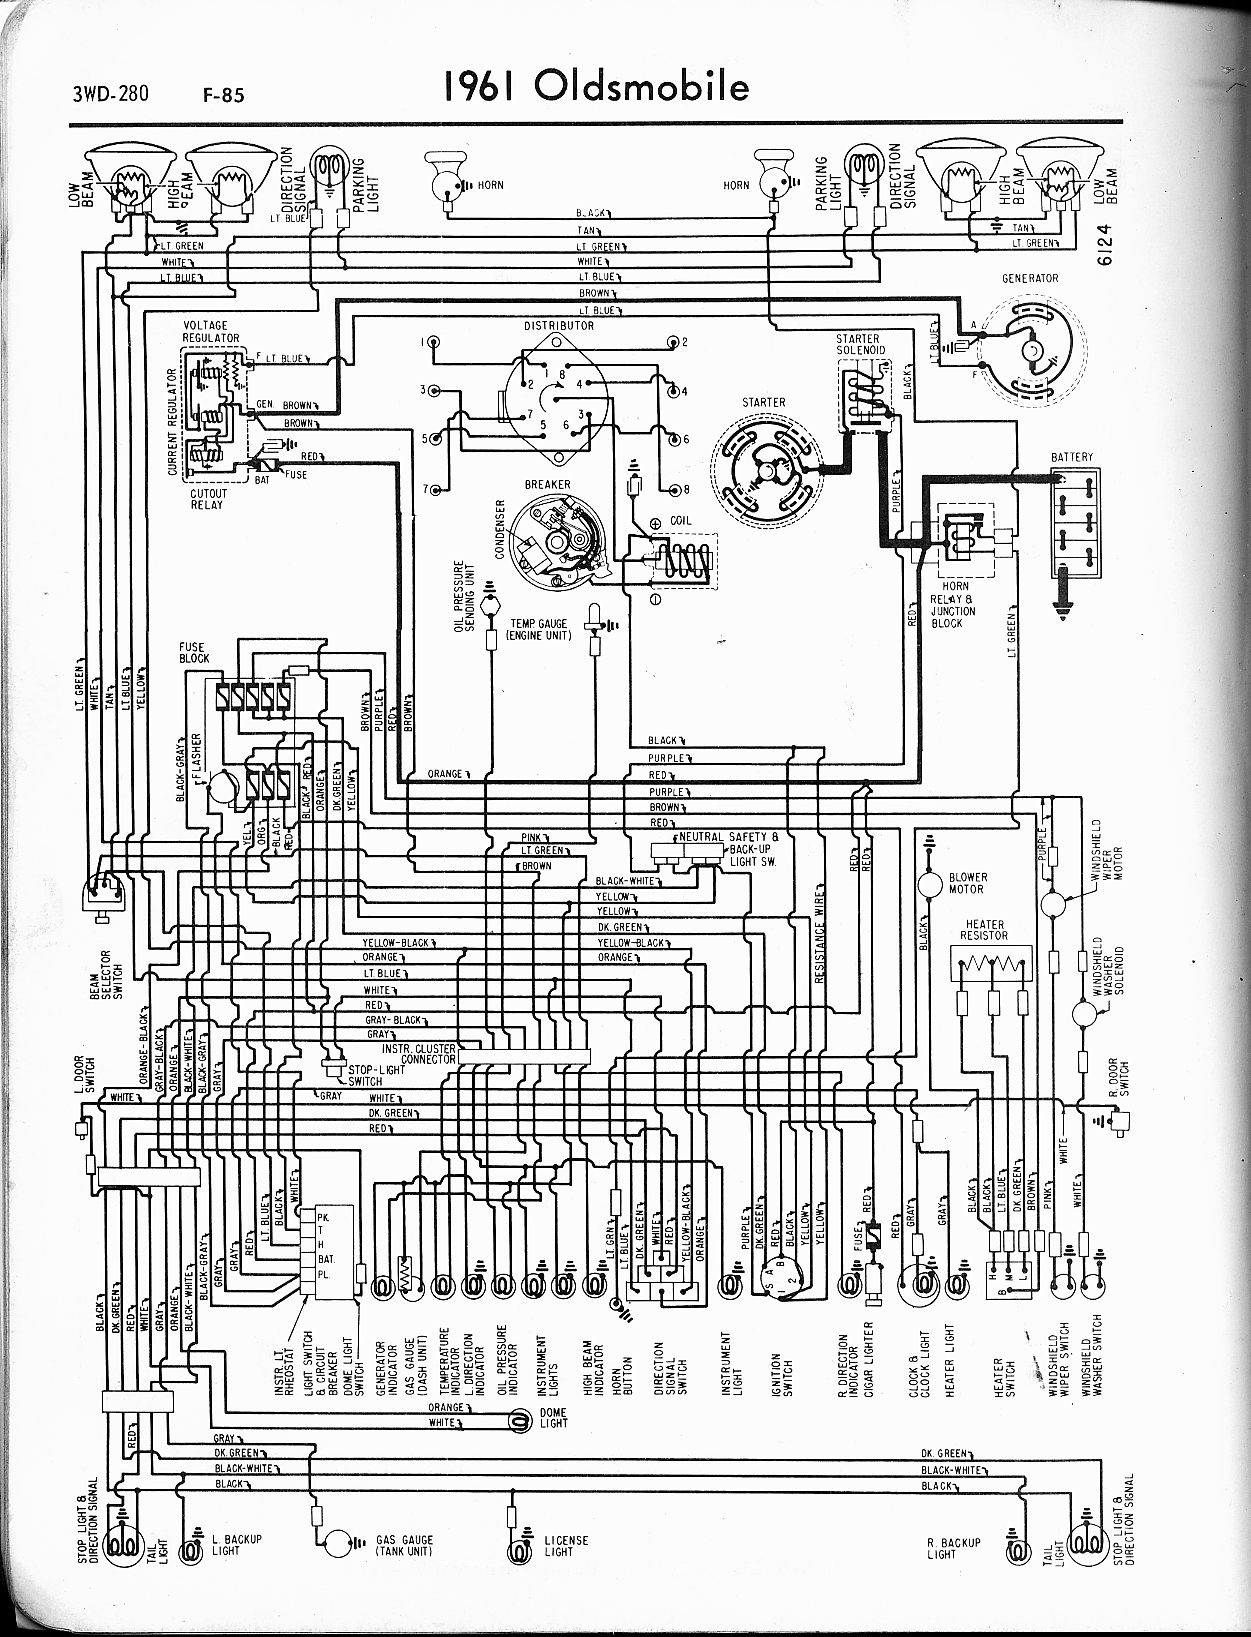 oldsmobile wiring diagrams the old car manual project 2003 buick century wiring diagram repair guides